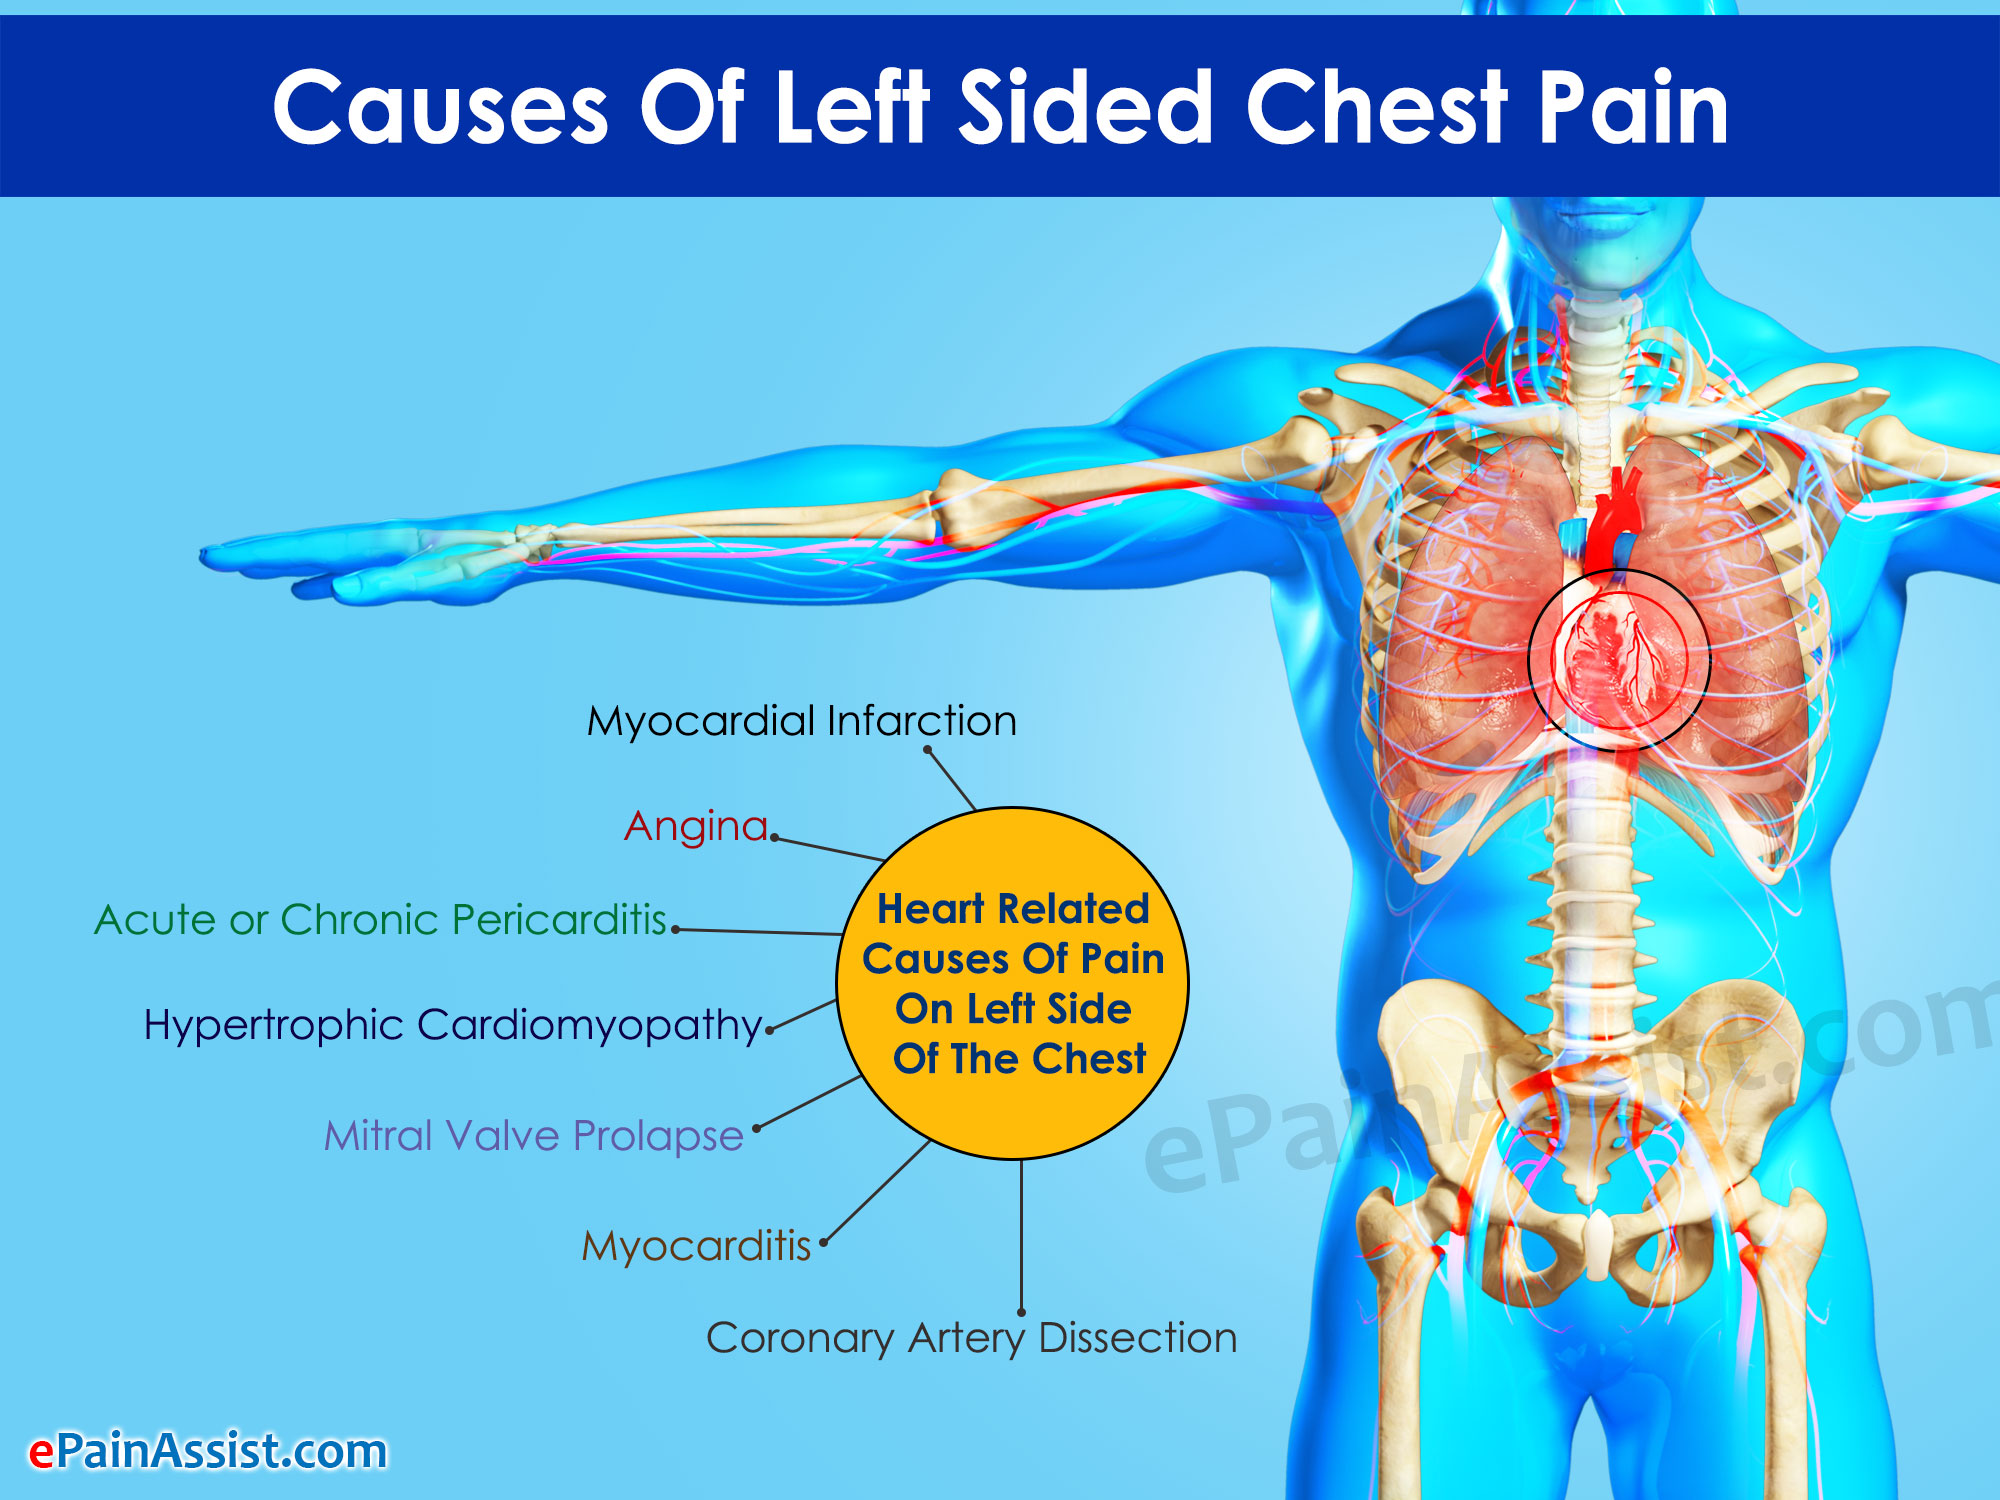 What Does Left Sided Chest Pain Indicate?